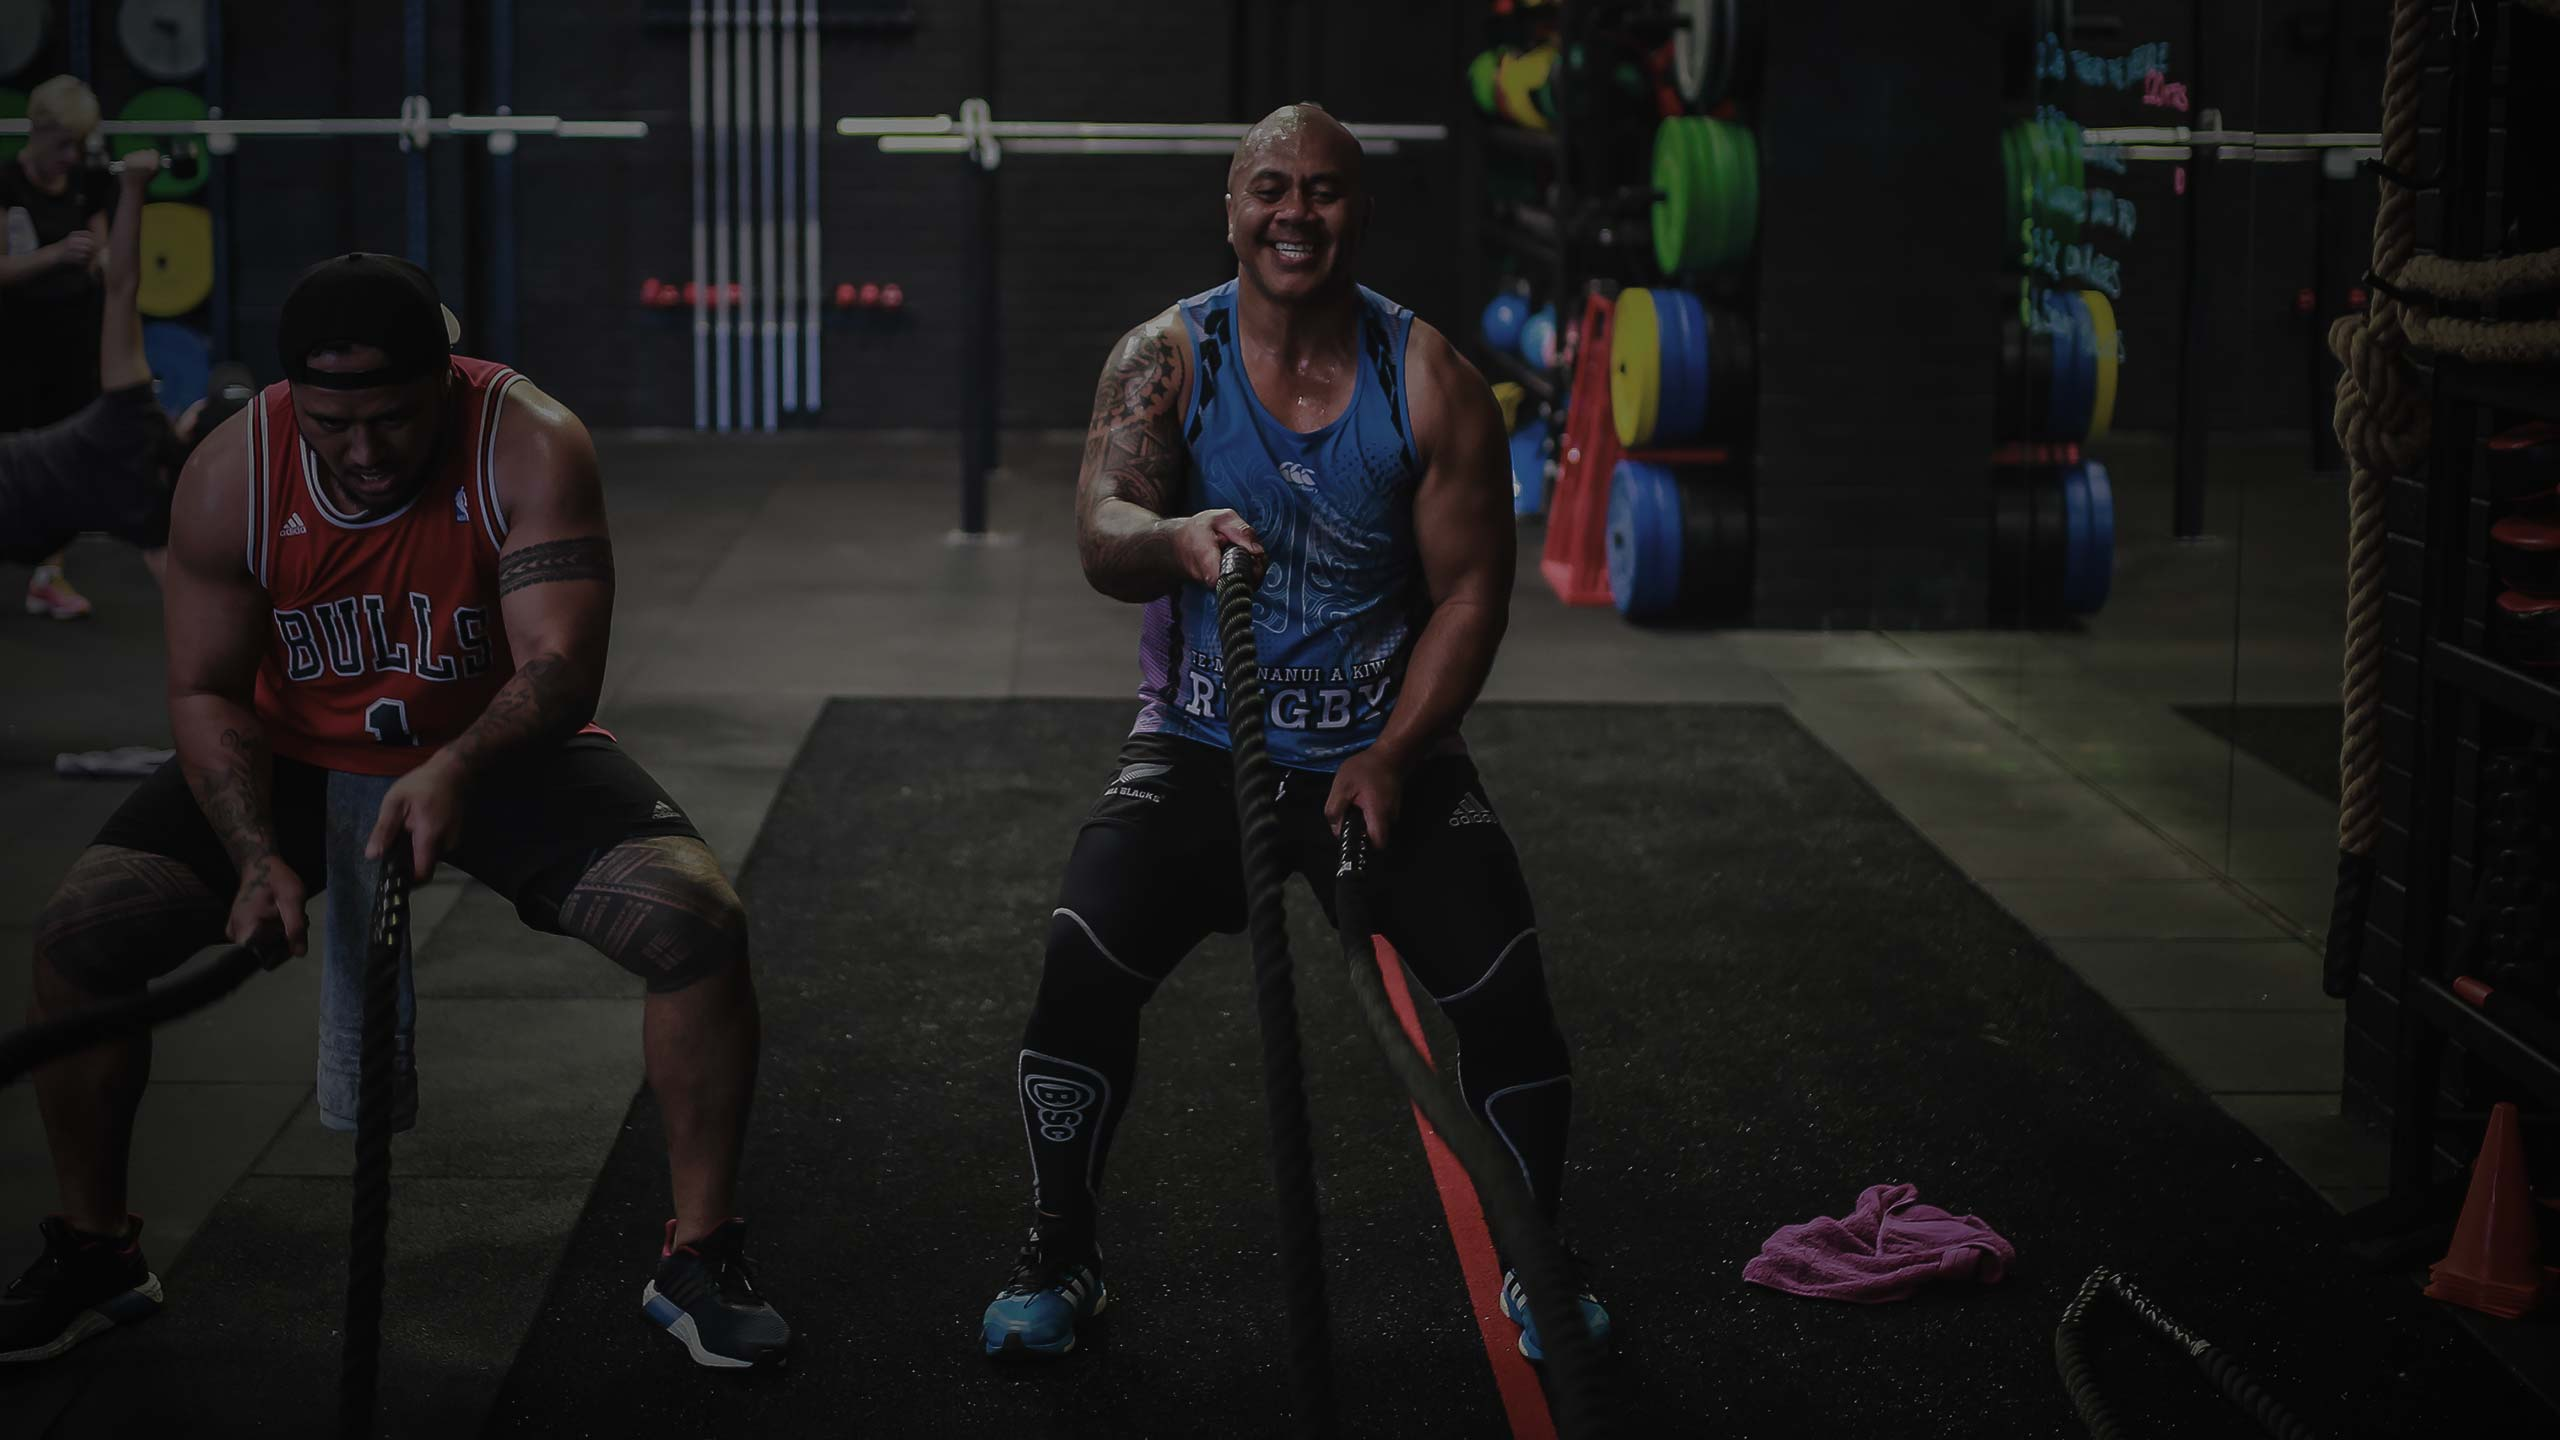 male athlete training with battle ropes